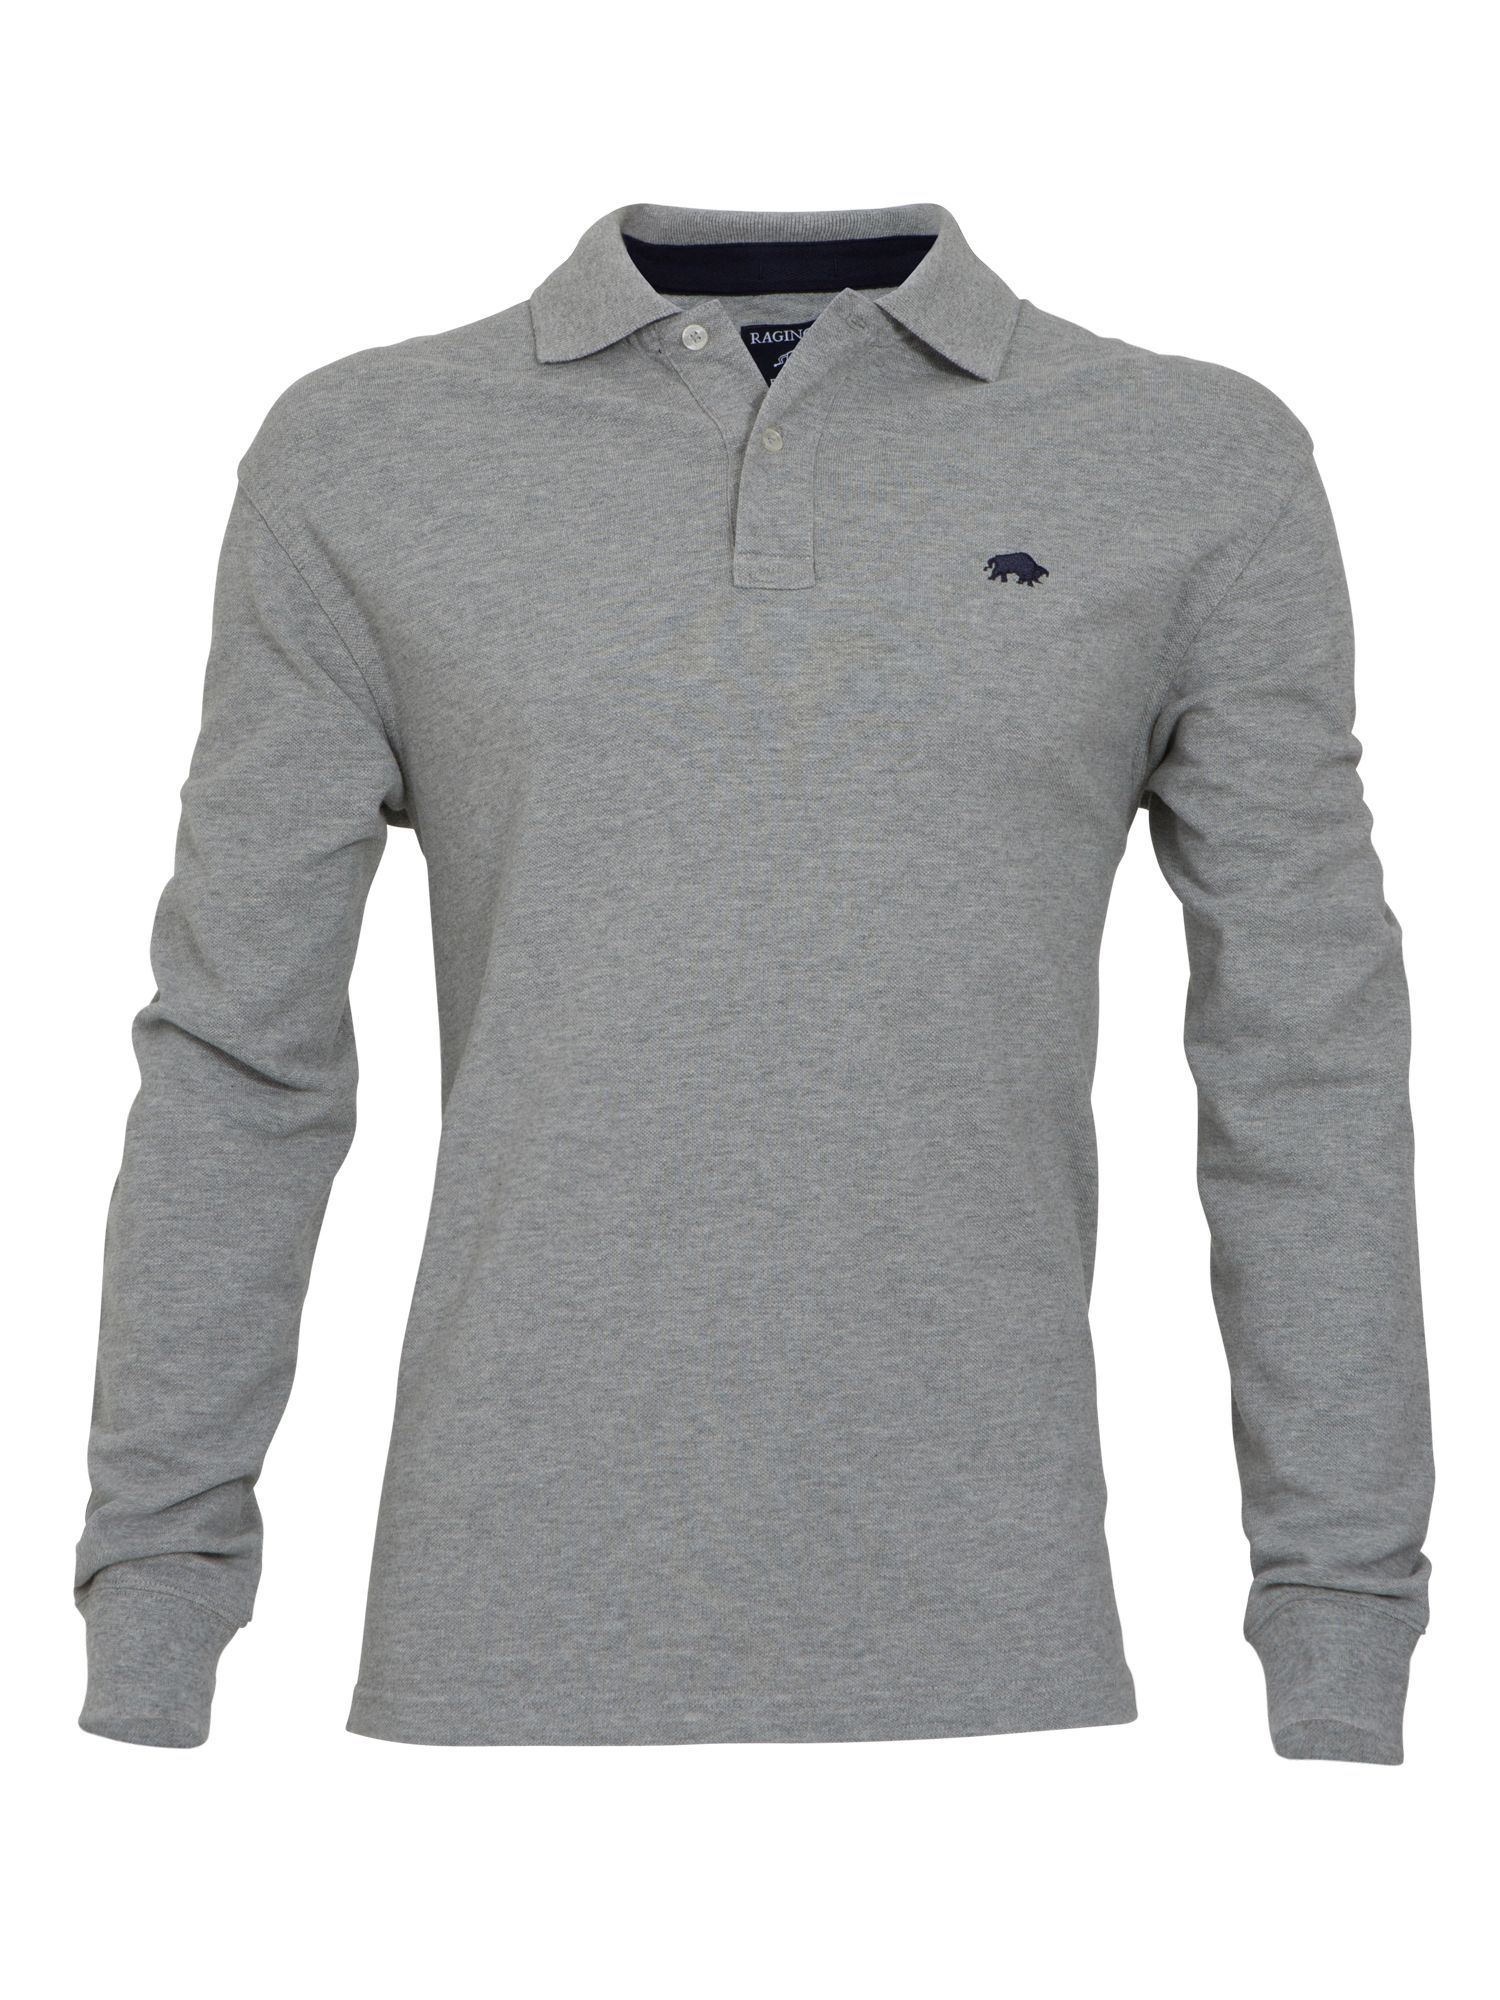 Signature polo l/s grey